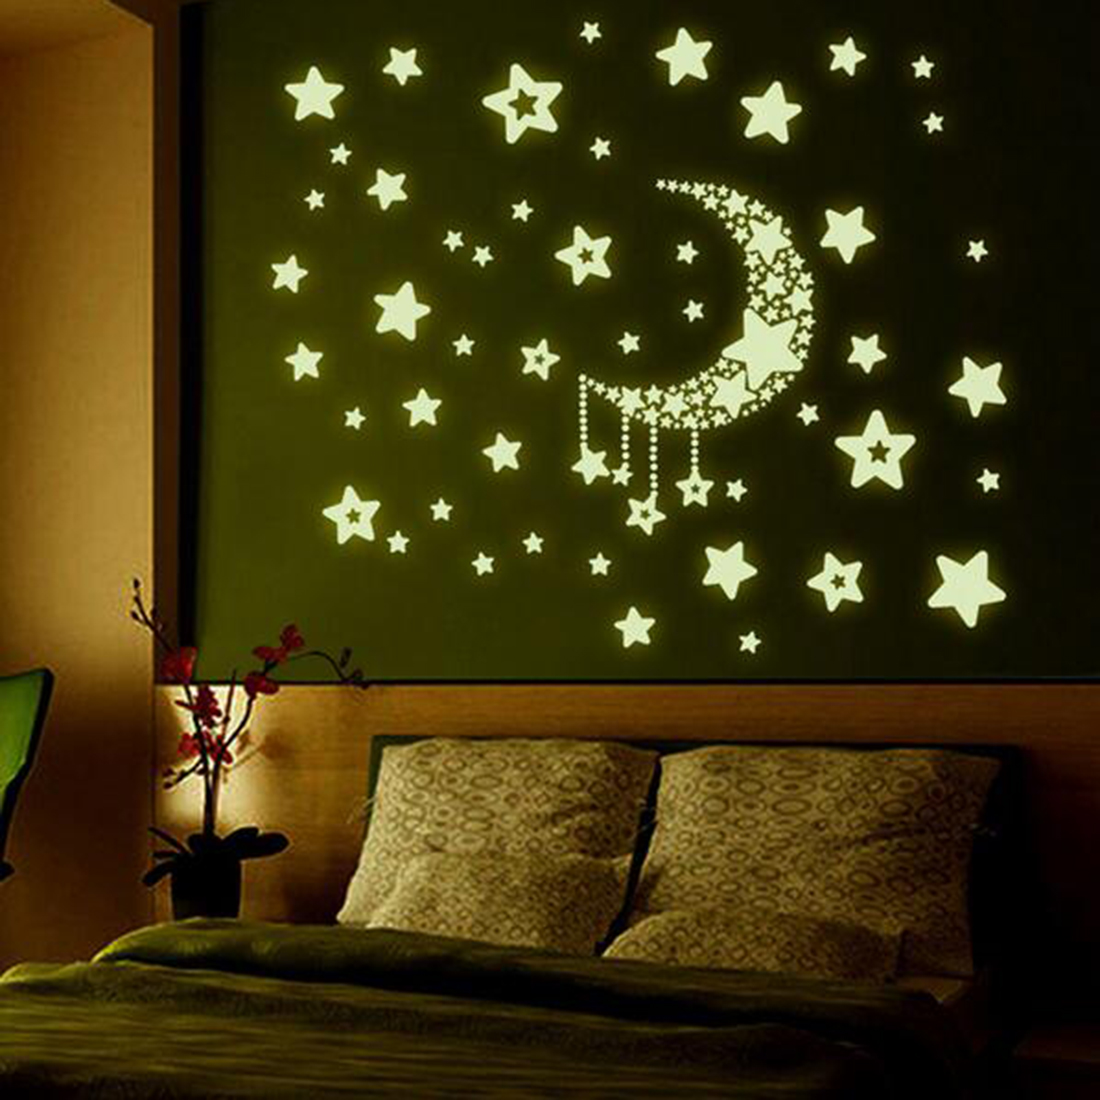 Fashion Night Light Luminous Stickers Home Decor Home Decoration Wall Sticker Rooms Wall Decals Moon And Stars(China (Mainland))